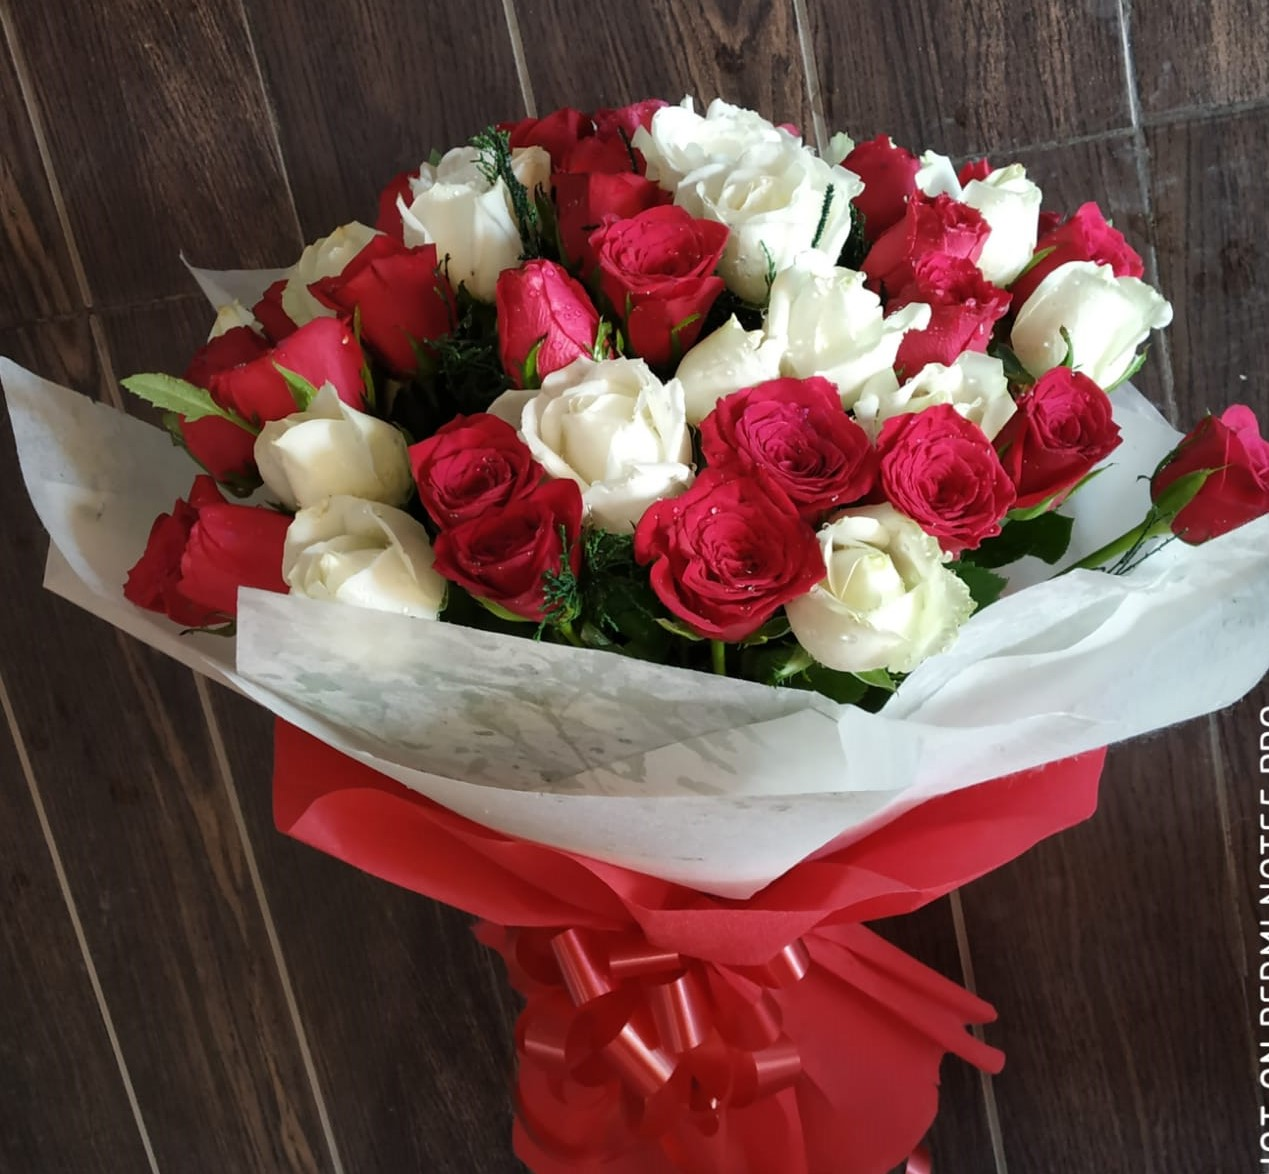 Flowers Delivery in Sector 13 GurgaonRed & White Roses in Duble Layer Packing